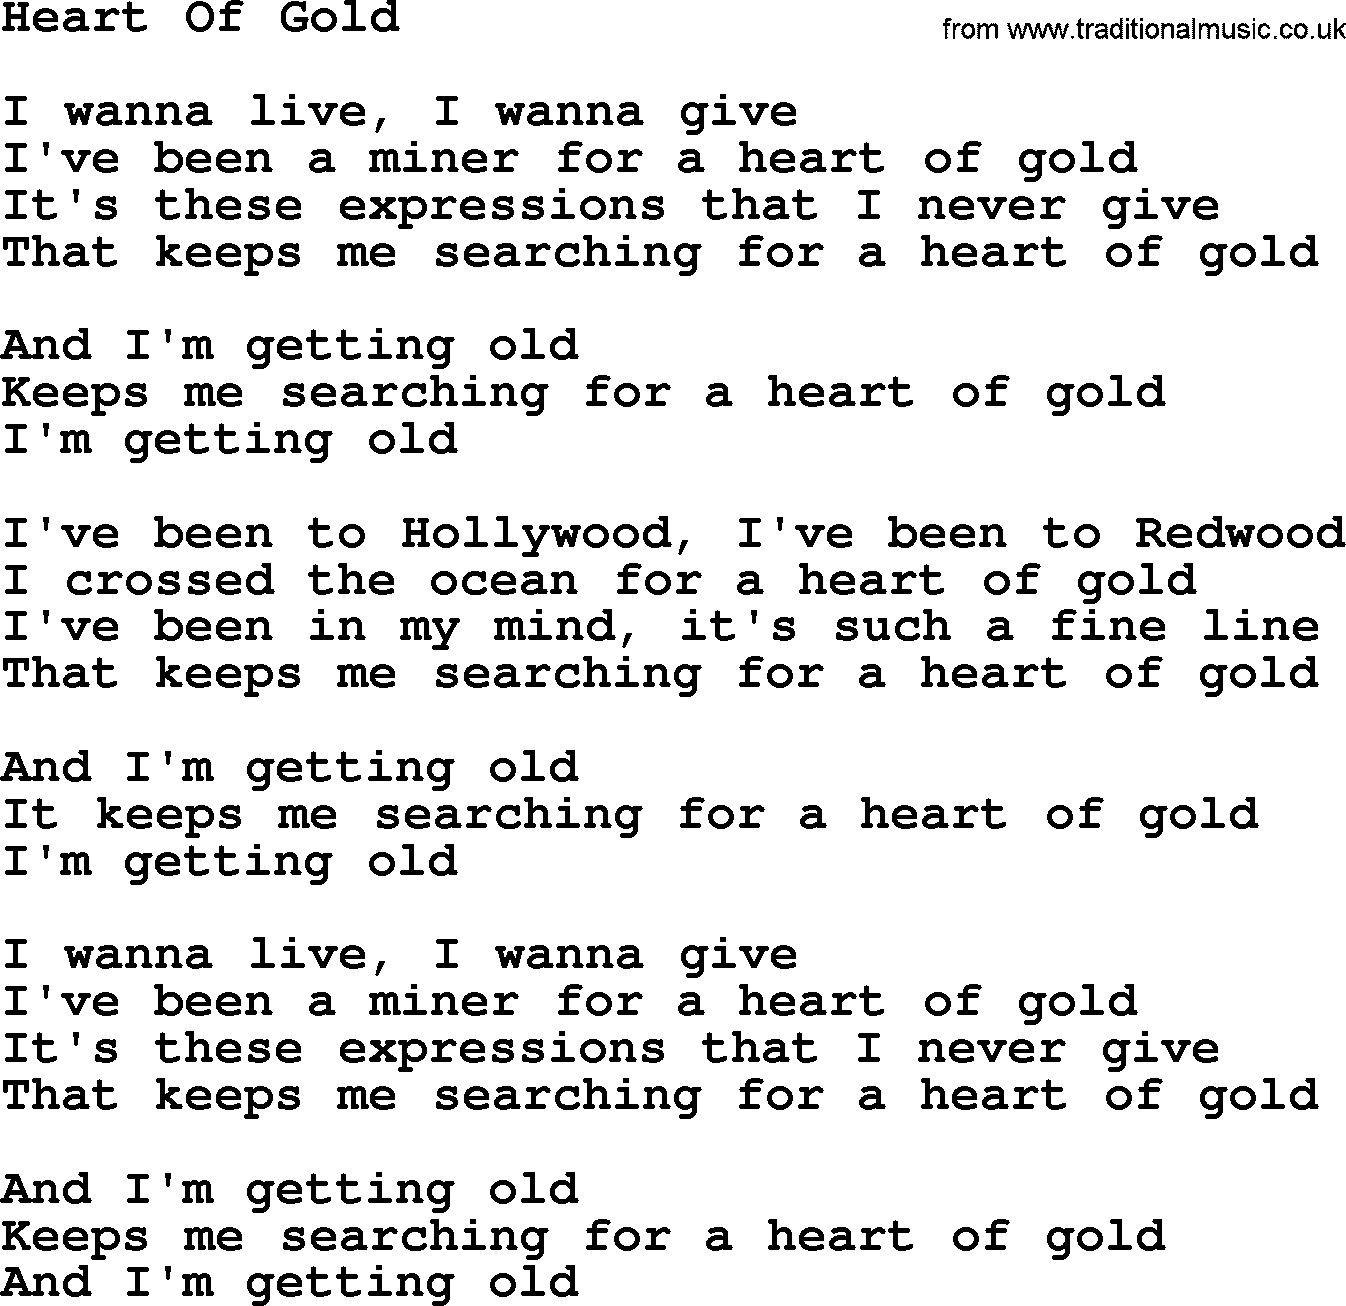 Willie Nelson Song Heart Of Gold Lyrics